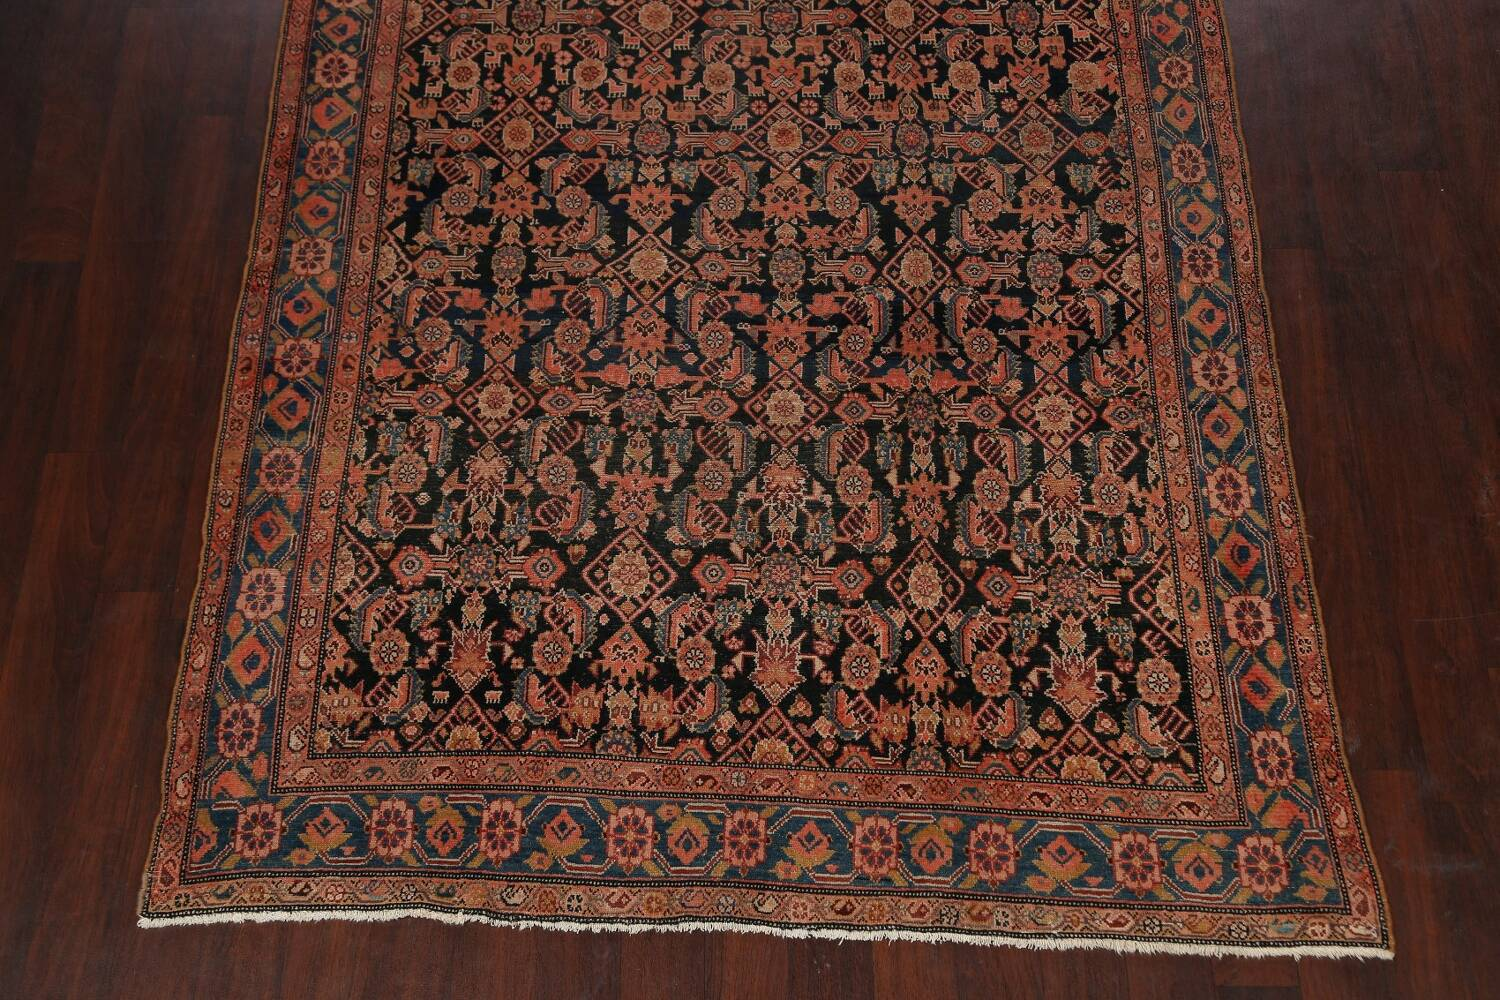 Pre-1900 Antique Malayer Persian Runner Rug 6x16 image 8